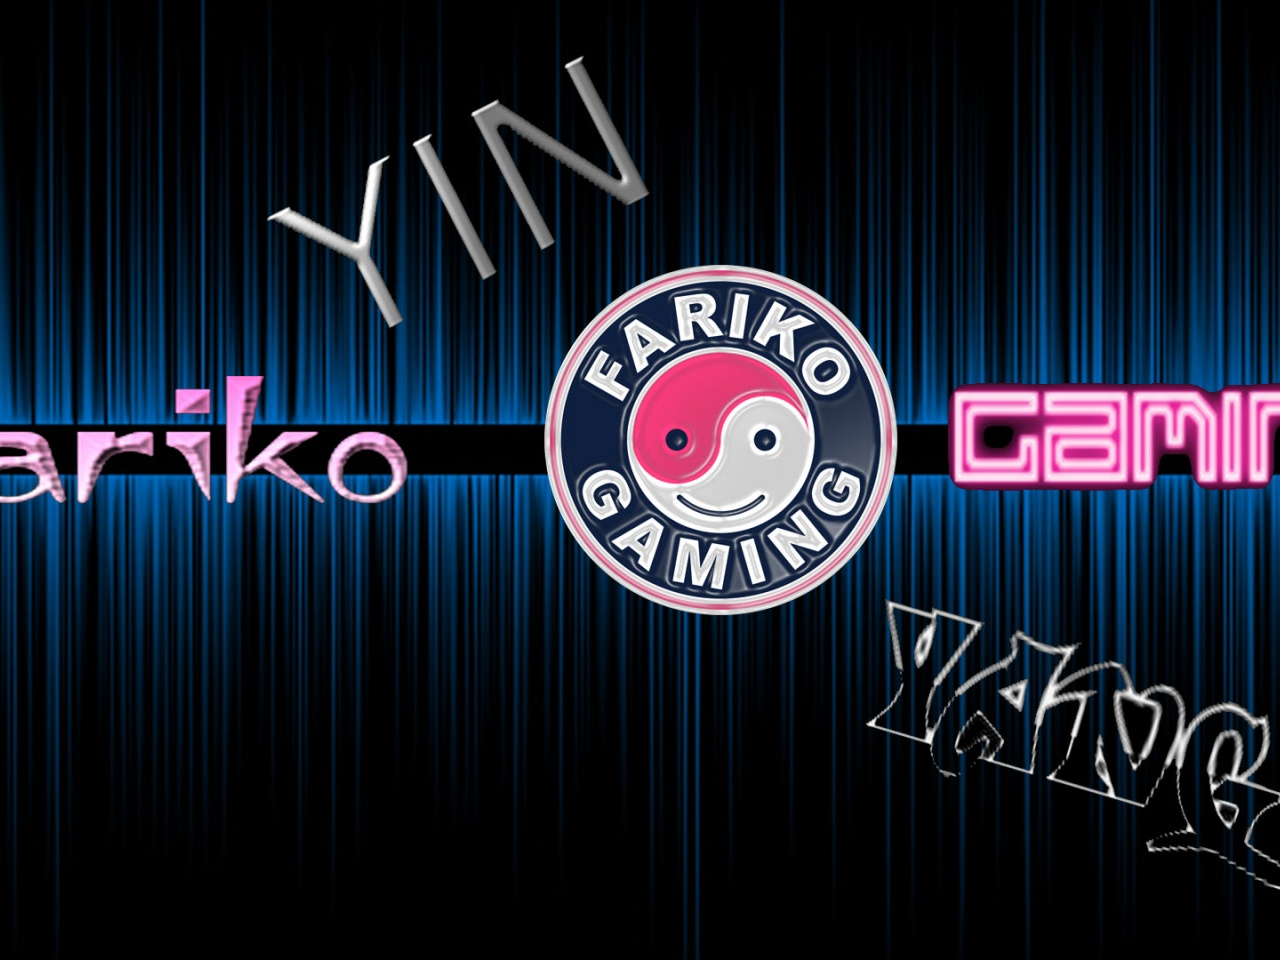 1280x960 Fariko Gaming, kevin, durant, views, facebook, share